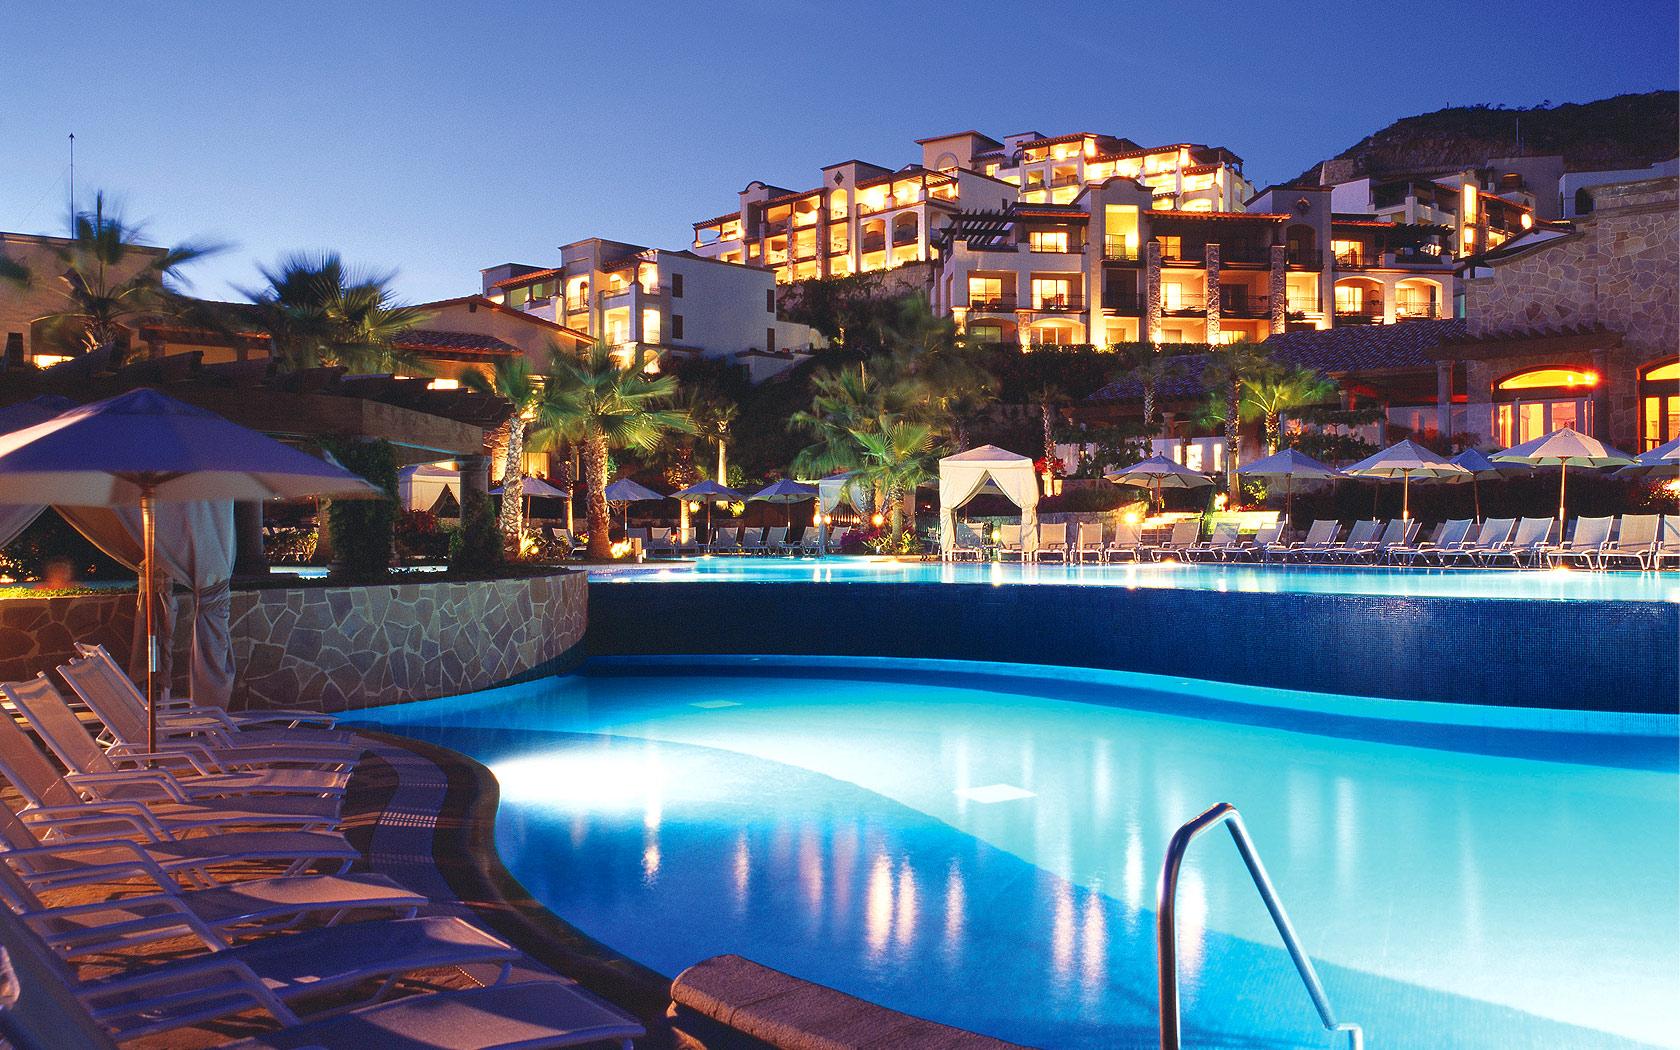 Cabo San Lucas Resort Pueblo Bonito Sunset Beach Resort